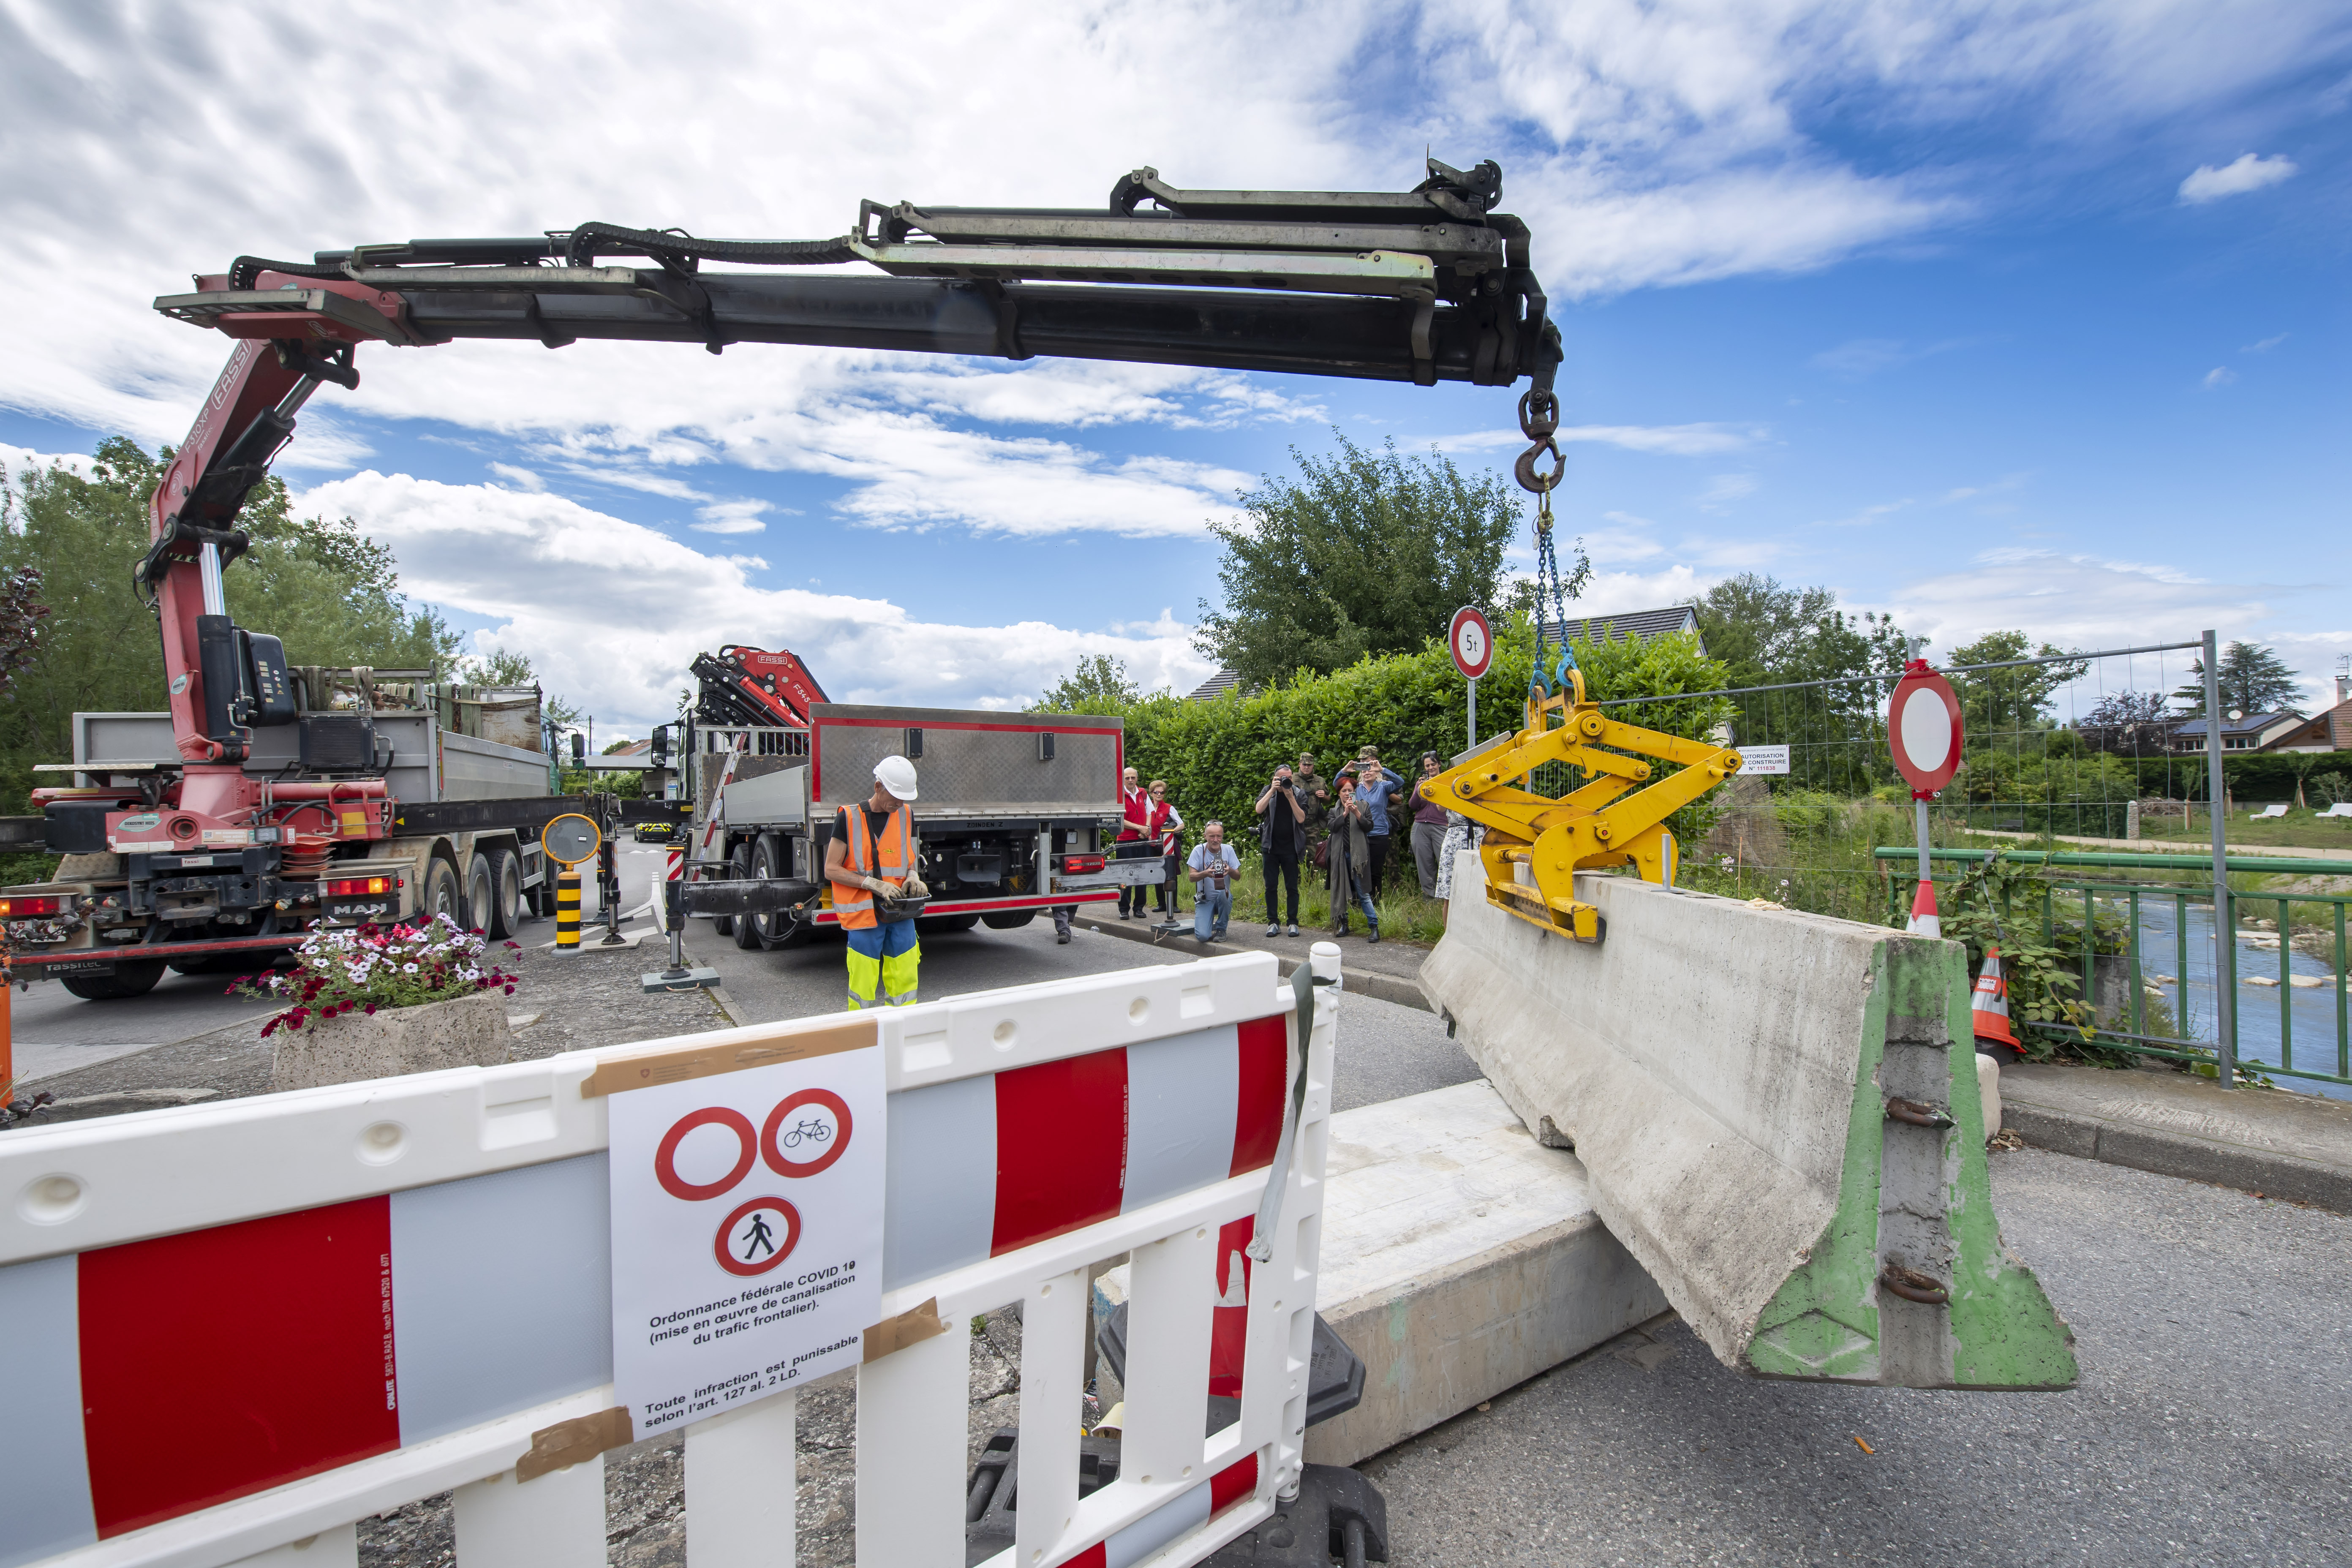 FILE - In this  Sunday, June 14, 2020 file photo, a crane removes the concrete blocks that closed customs access, in Thonex near Geneva, Switzerland. The European Union is set to make public Tuesday June 30, 2020, a list of countries whose citizens will be allowed to enter 31 European countries, but most Americans are likely to be refused entry for at least another two weeks due to soaring coronavirus infections in the U.S. Photo: AP